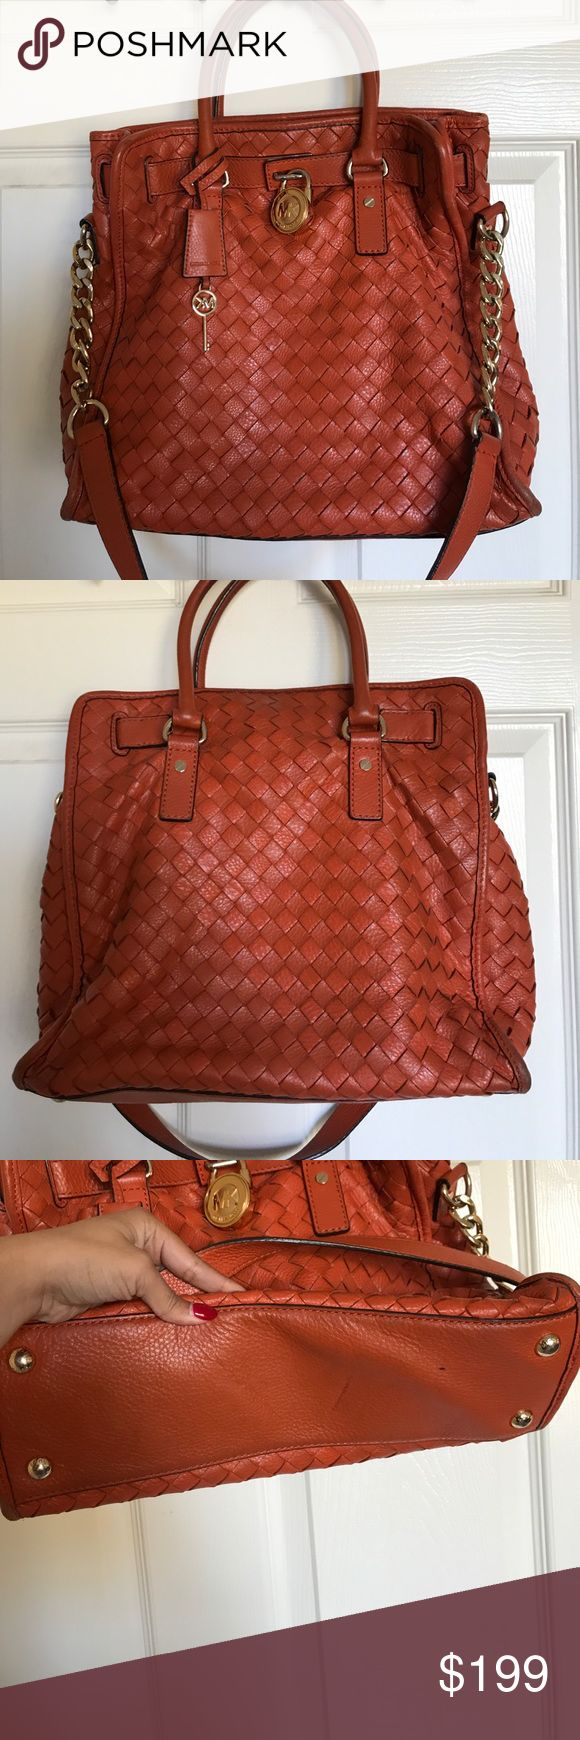 Michael KorA Large Woven Hamilton Tote Bag Beautiful burnt orange purse that can be used as tote of shoulder bag. As shown in photos, there are some signs of wear (scratches on gold and some gold wear). There are a few stains on side and bottom of bag (all shown in photos). 2 very small stains on front of bag. Inside has one zipper pocket and four open pockets. Few stains on inside of bag. Price negotiable. KORS Michael Kors Bags Totes